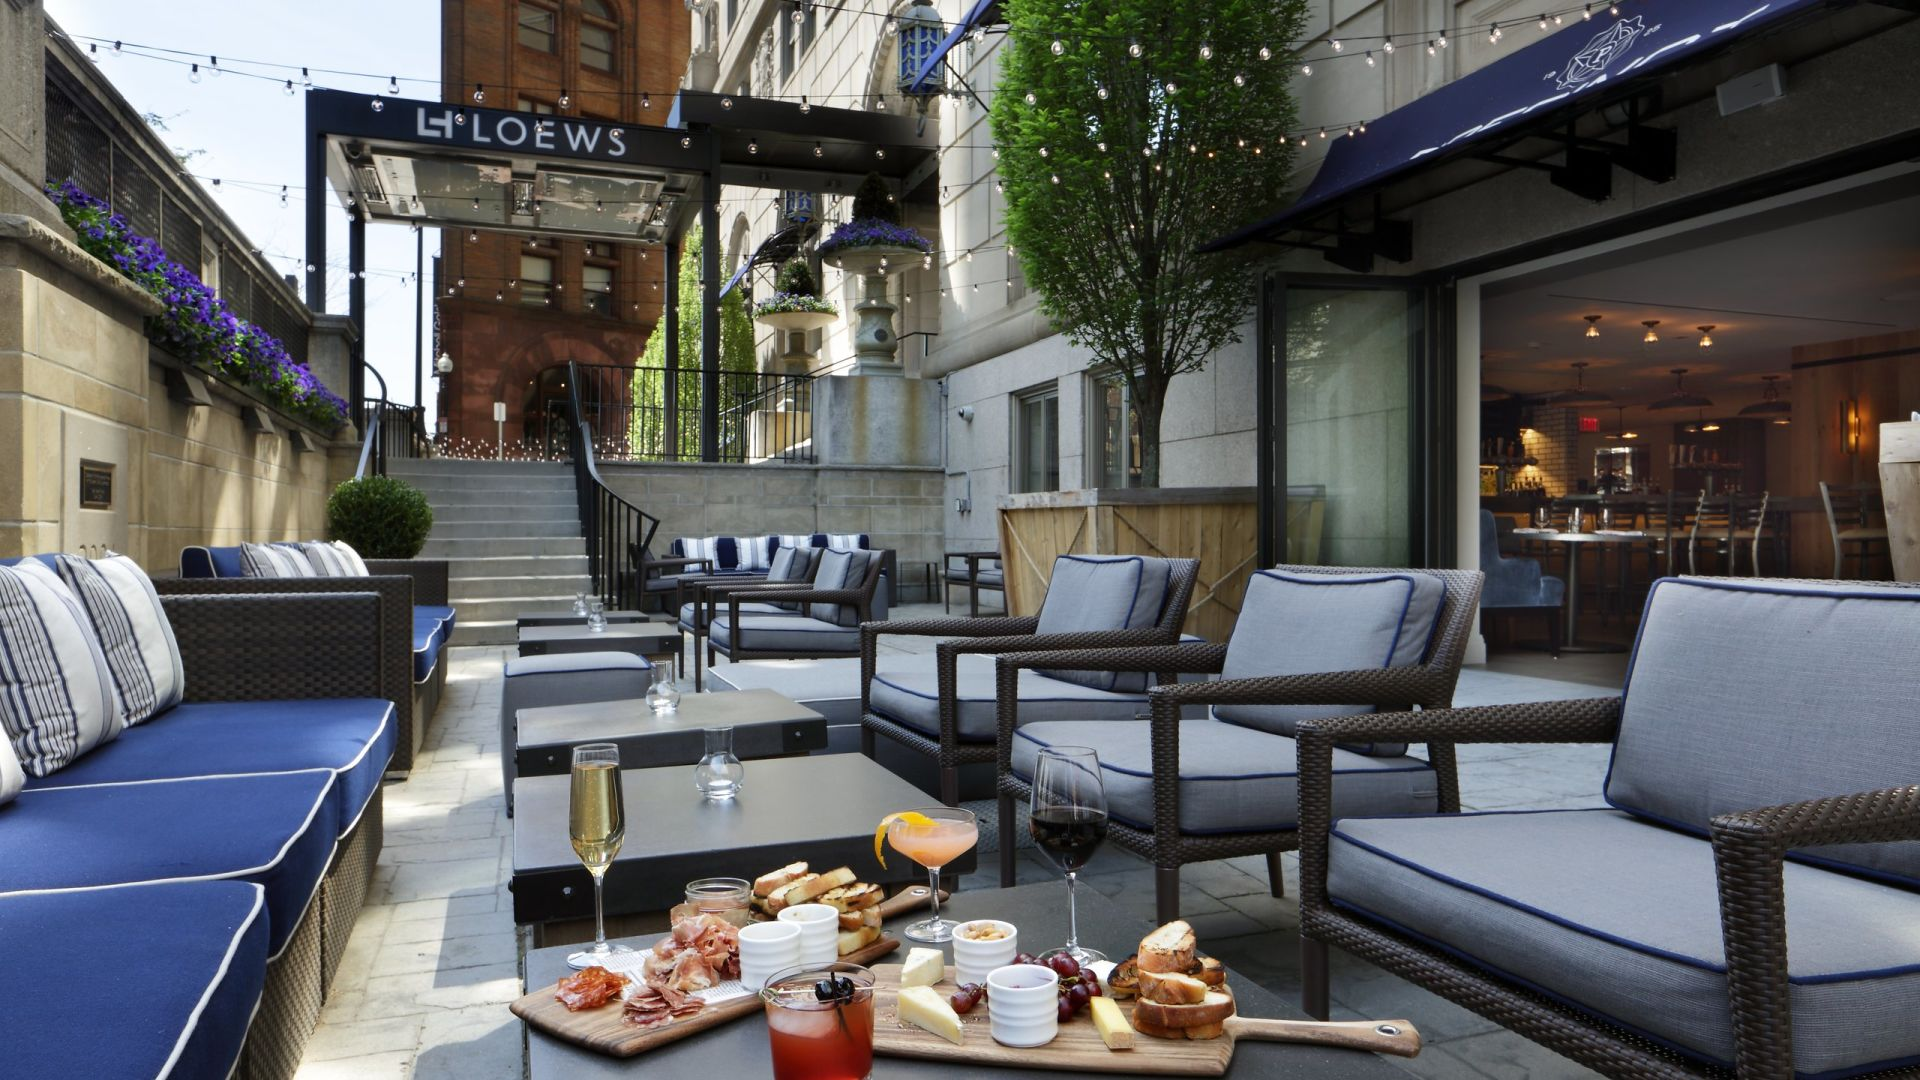 Patio en Precinct Kitchen + Bar | Loews Boston Hotel